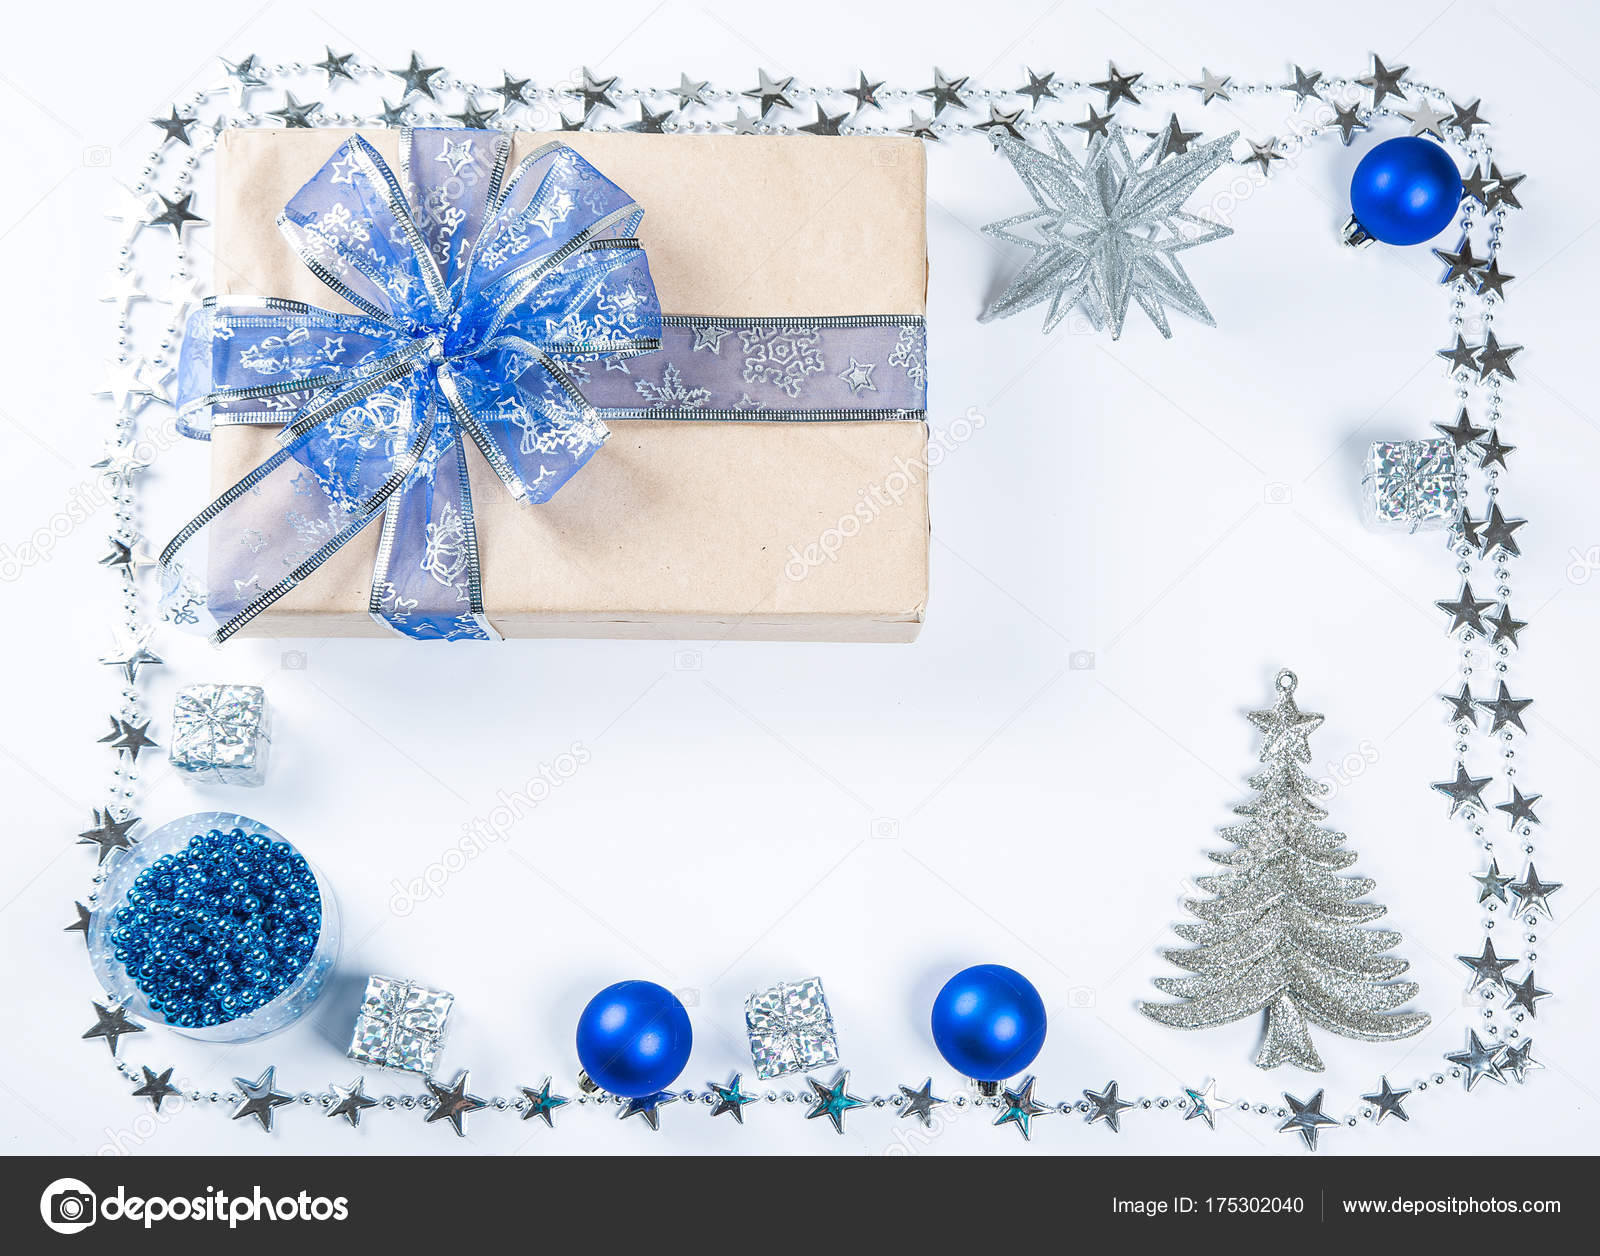 classy christmas gifts box presents in brown paper with blue toys and new year decor on white merry christmas card background photo by lilichka2015